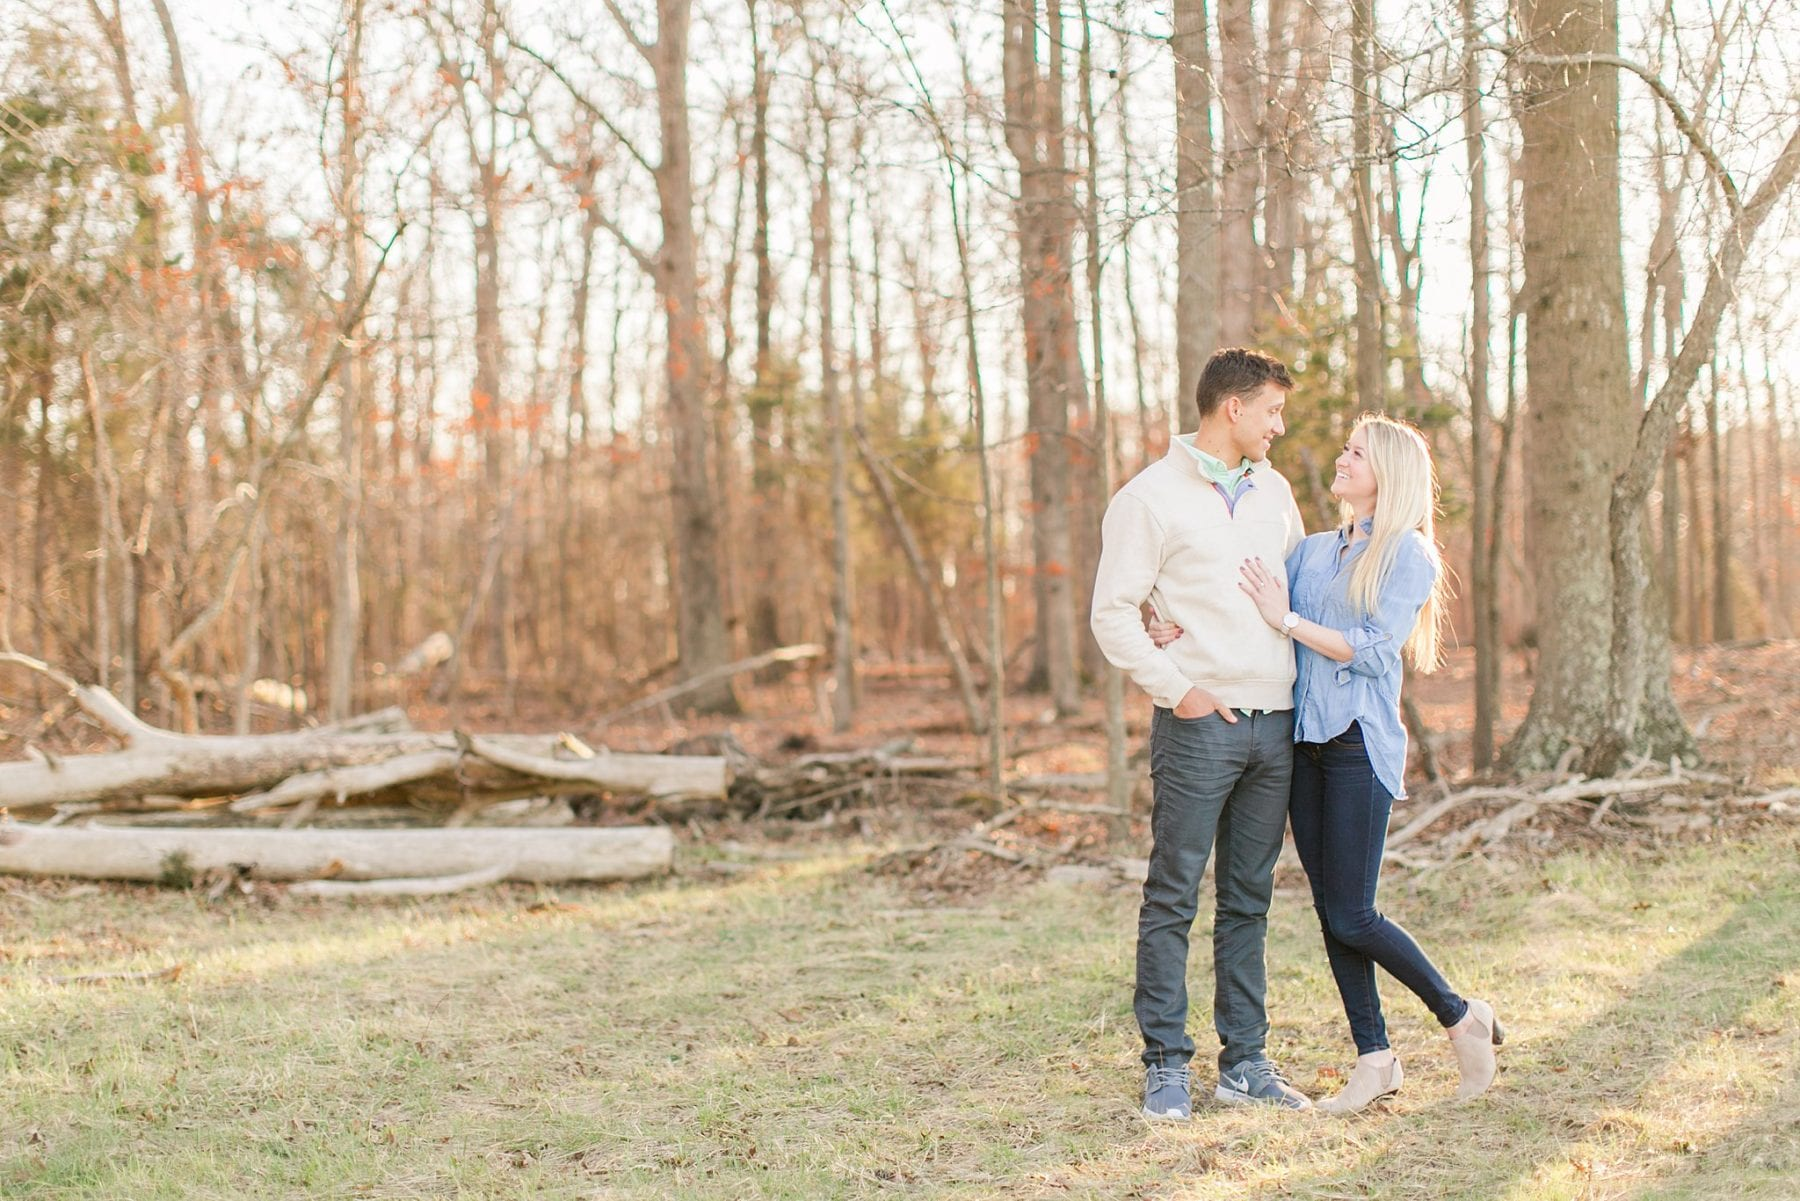 Manassas Battlefield Engagement Session Virginia Wedding Photographer Danielle & Charlie Megan Kelsey Photography-5127.jpg